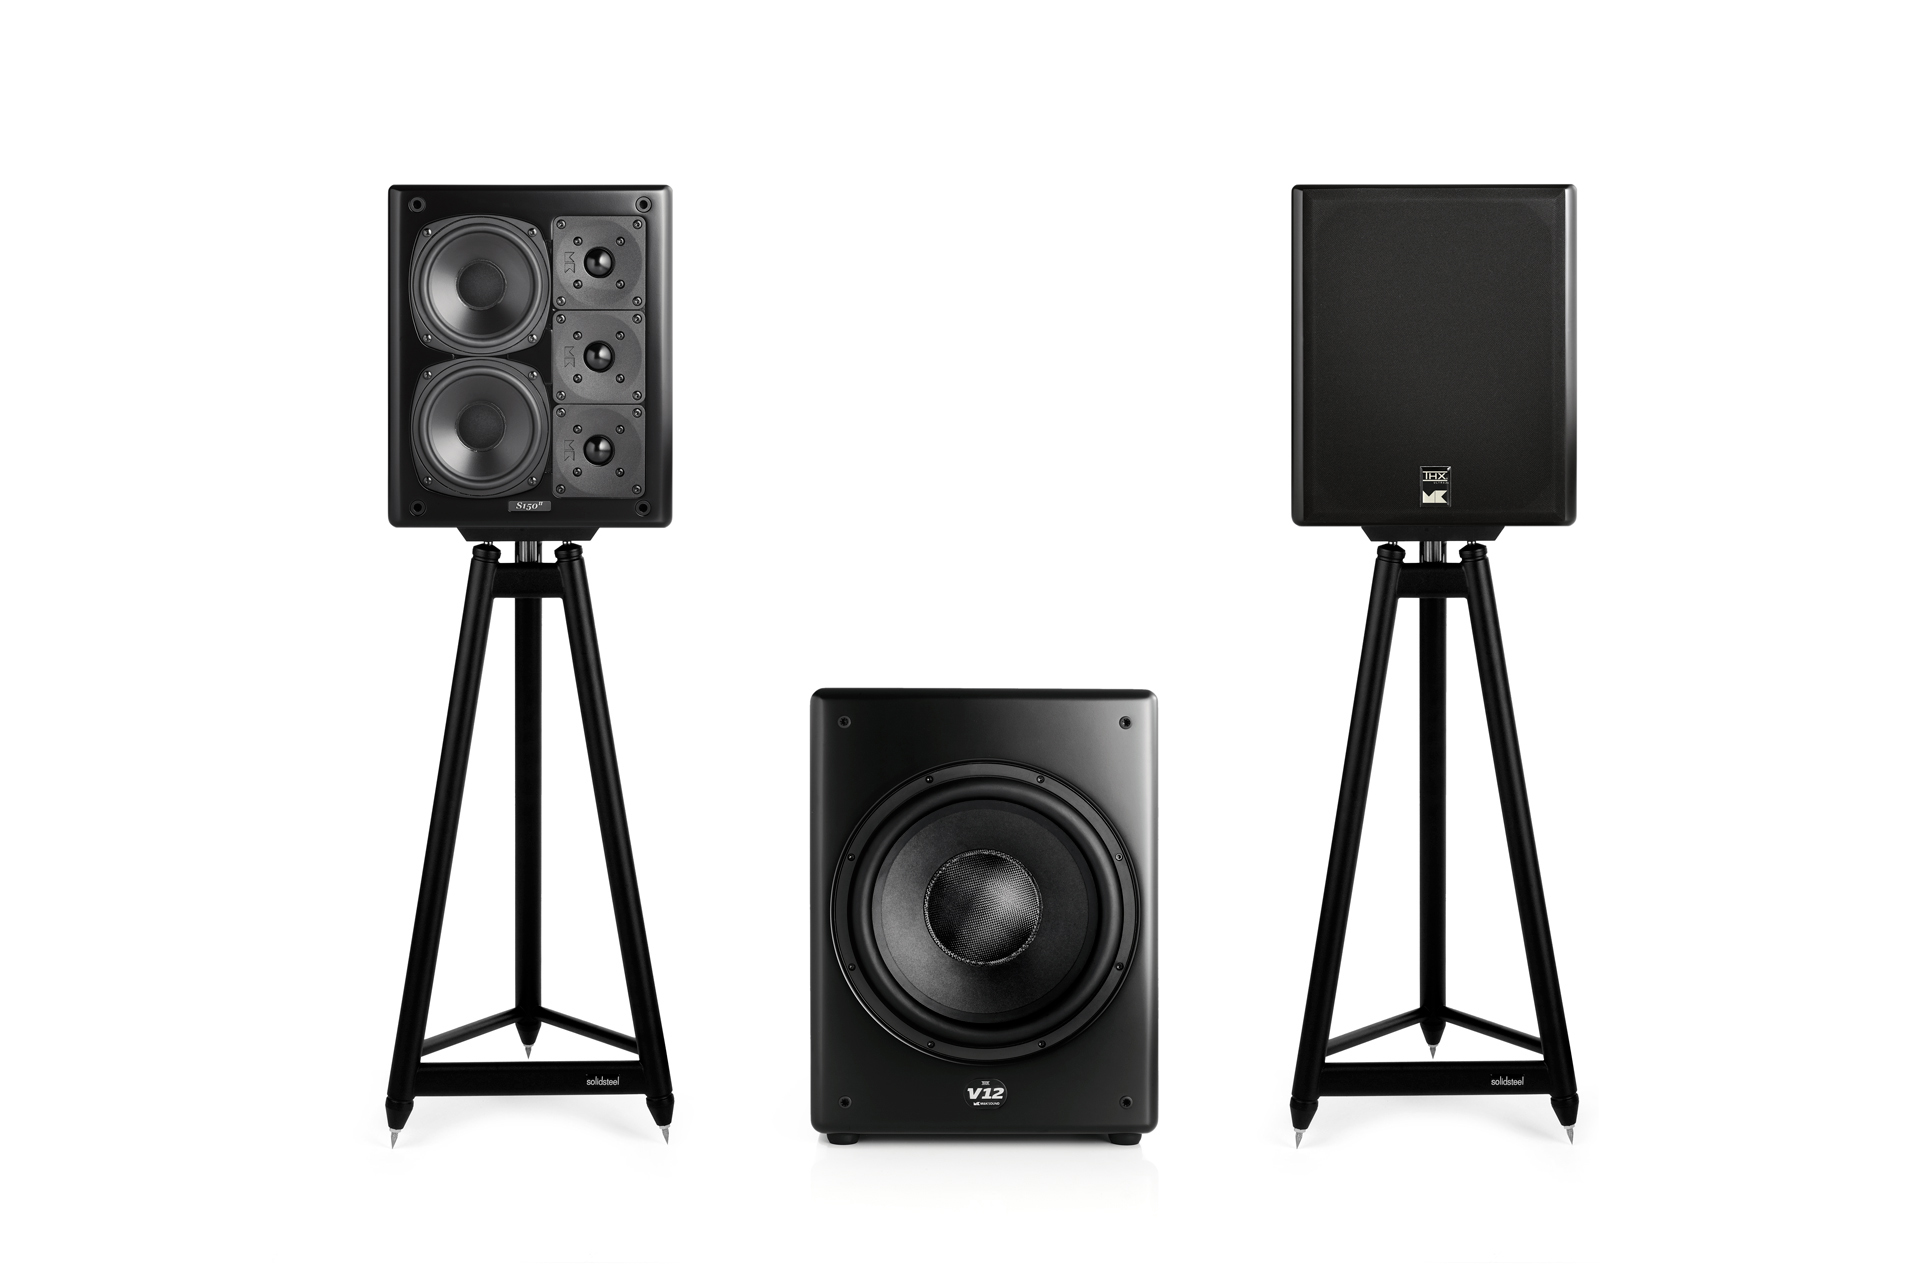 M&K Sound S150 speakers and V12 subwoofer